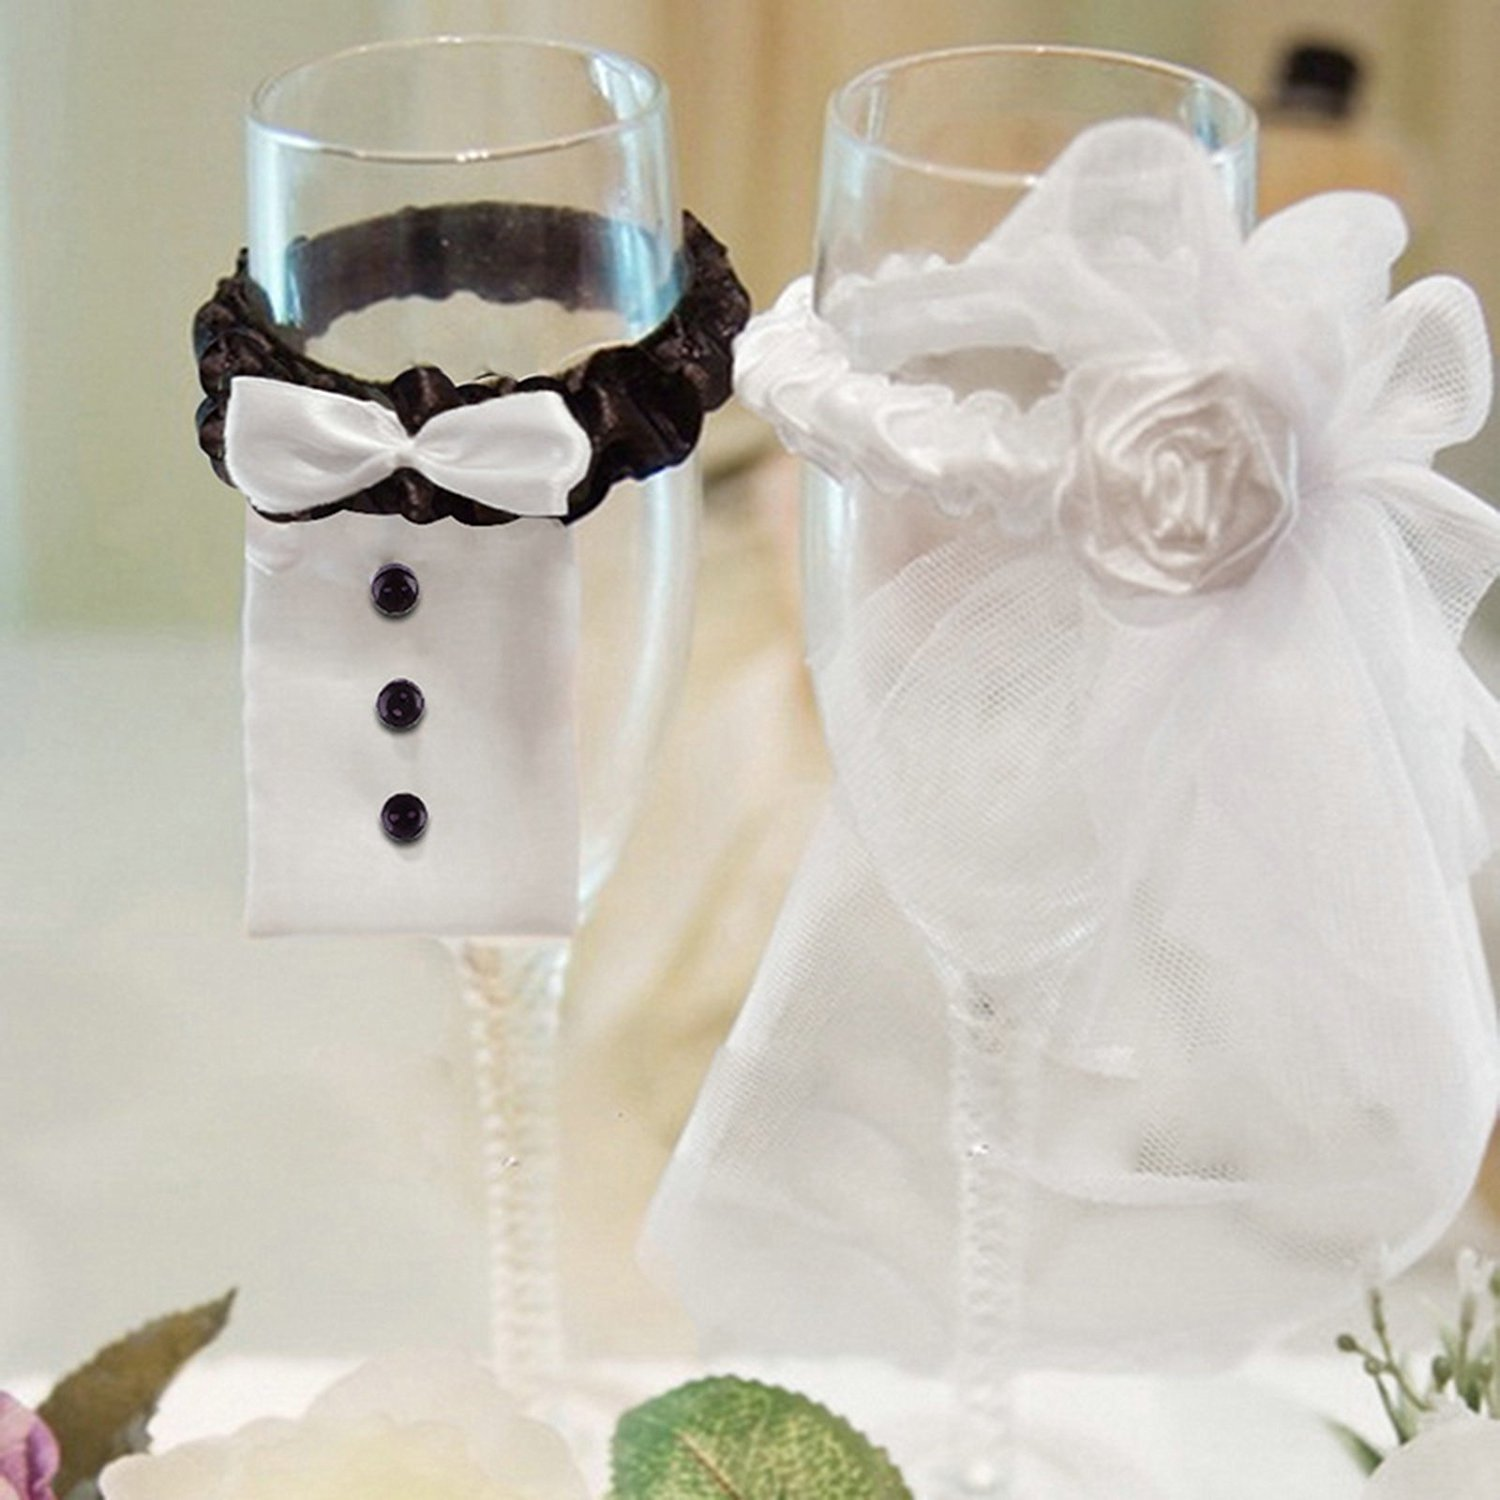 Fashionclubs Wedding Party Wine Glasses Tosting Lace Cover For Table Decoration Bridegroom And Bride Type